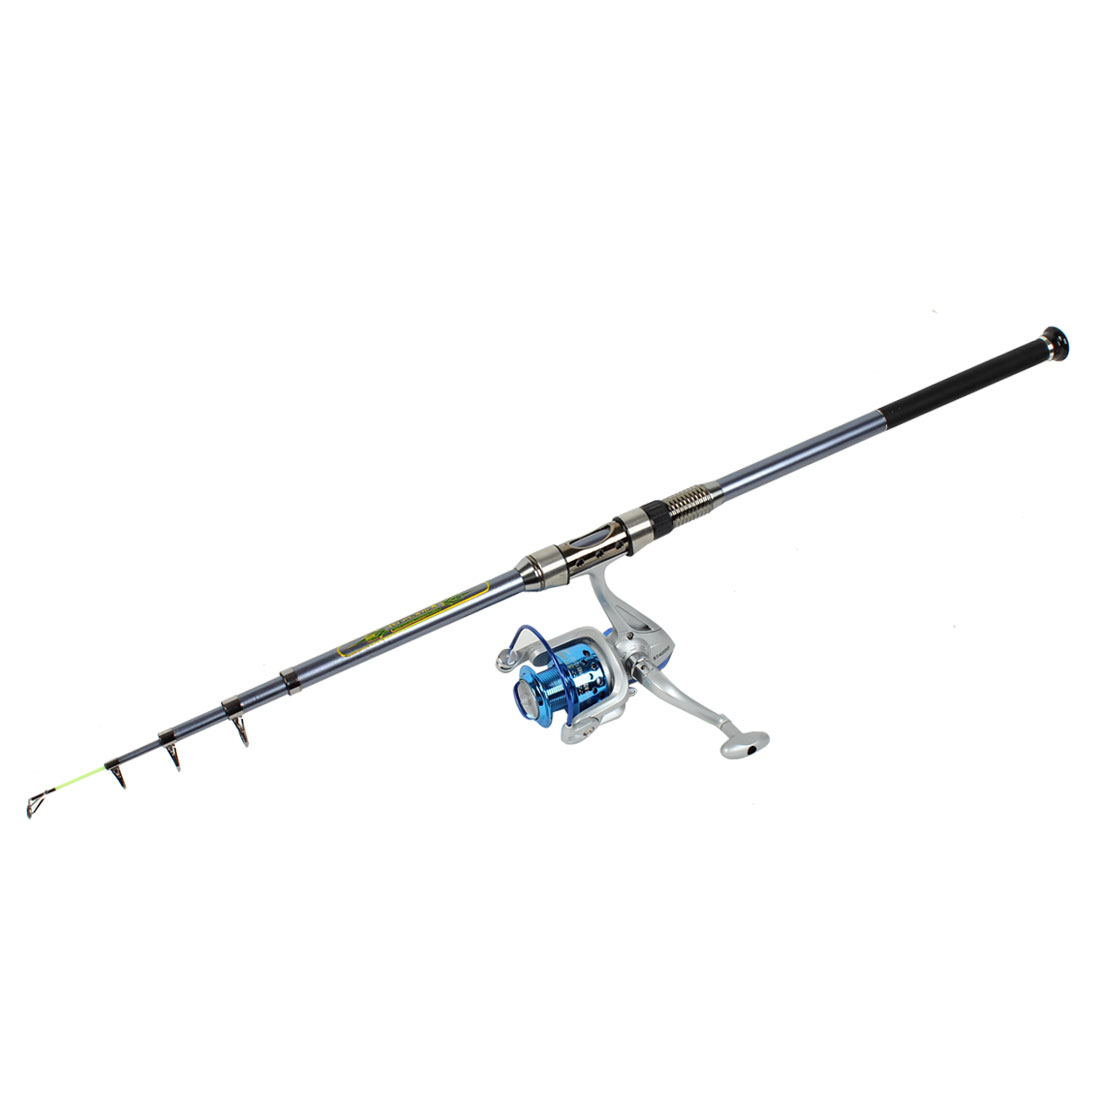 7Ft 5 Sections Carbon Sea Fishing Spinning Rods Casting Pole Gray